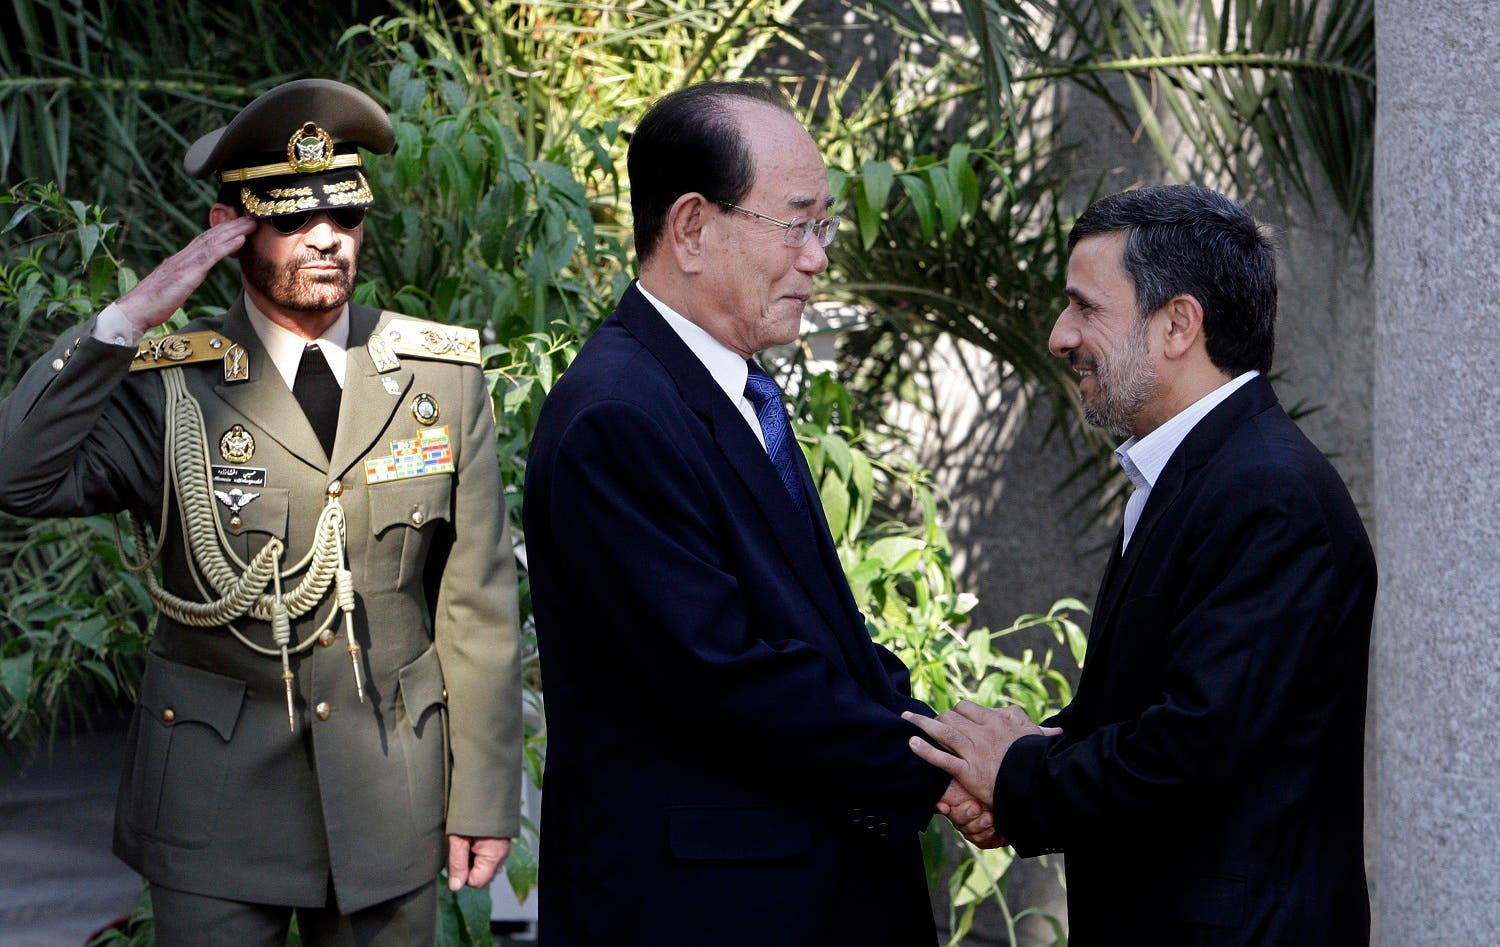 Mahmoud Ahmadinejad shakes hands with the president of the Presidium of North Korea's Supreme People's Assembly Kim Yong-nam, during a welcoming ceremony in Tehran, Iran, Saturday, Sept. 1, 2012. (AP)